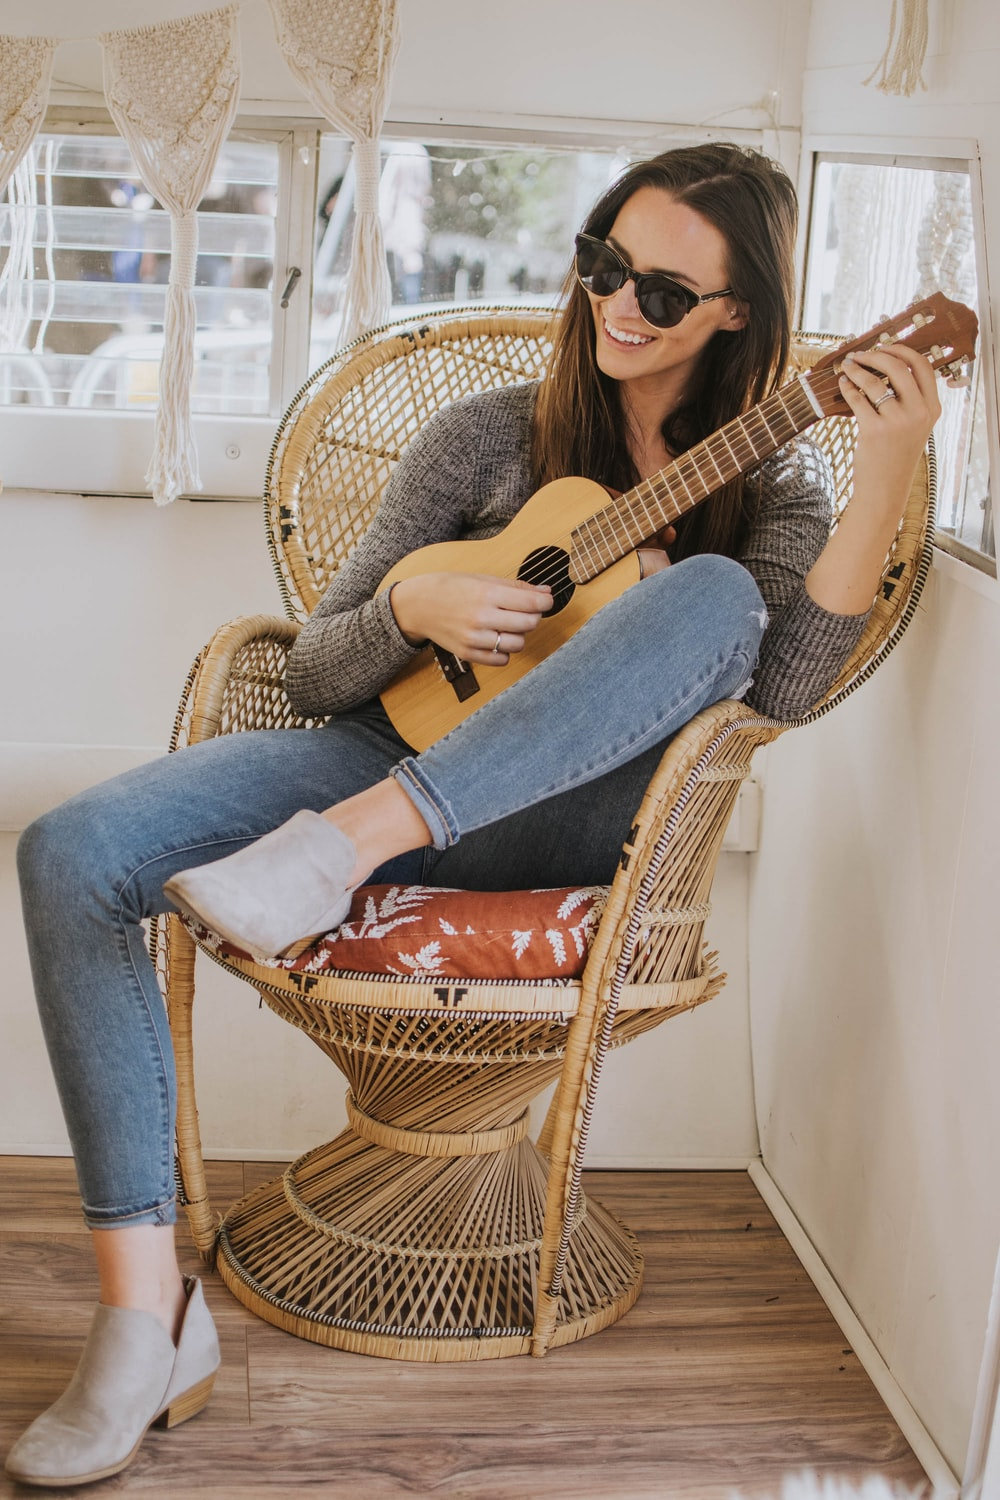 woman sitting on wicker chair holding classical guitar